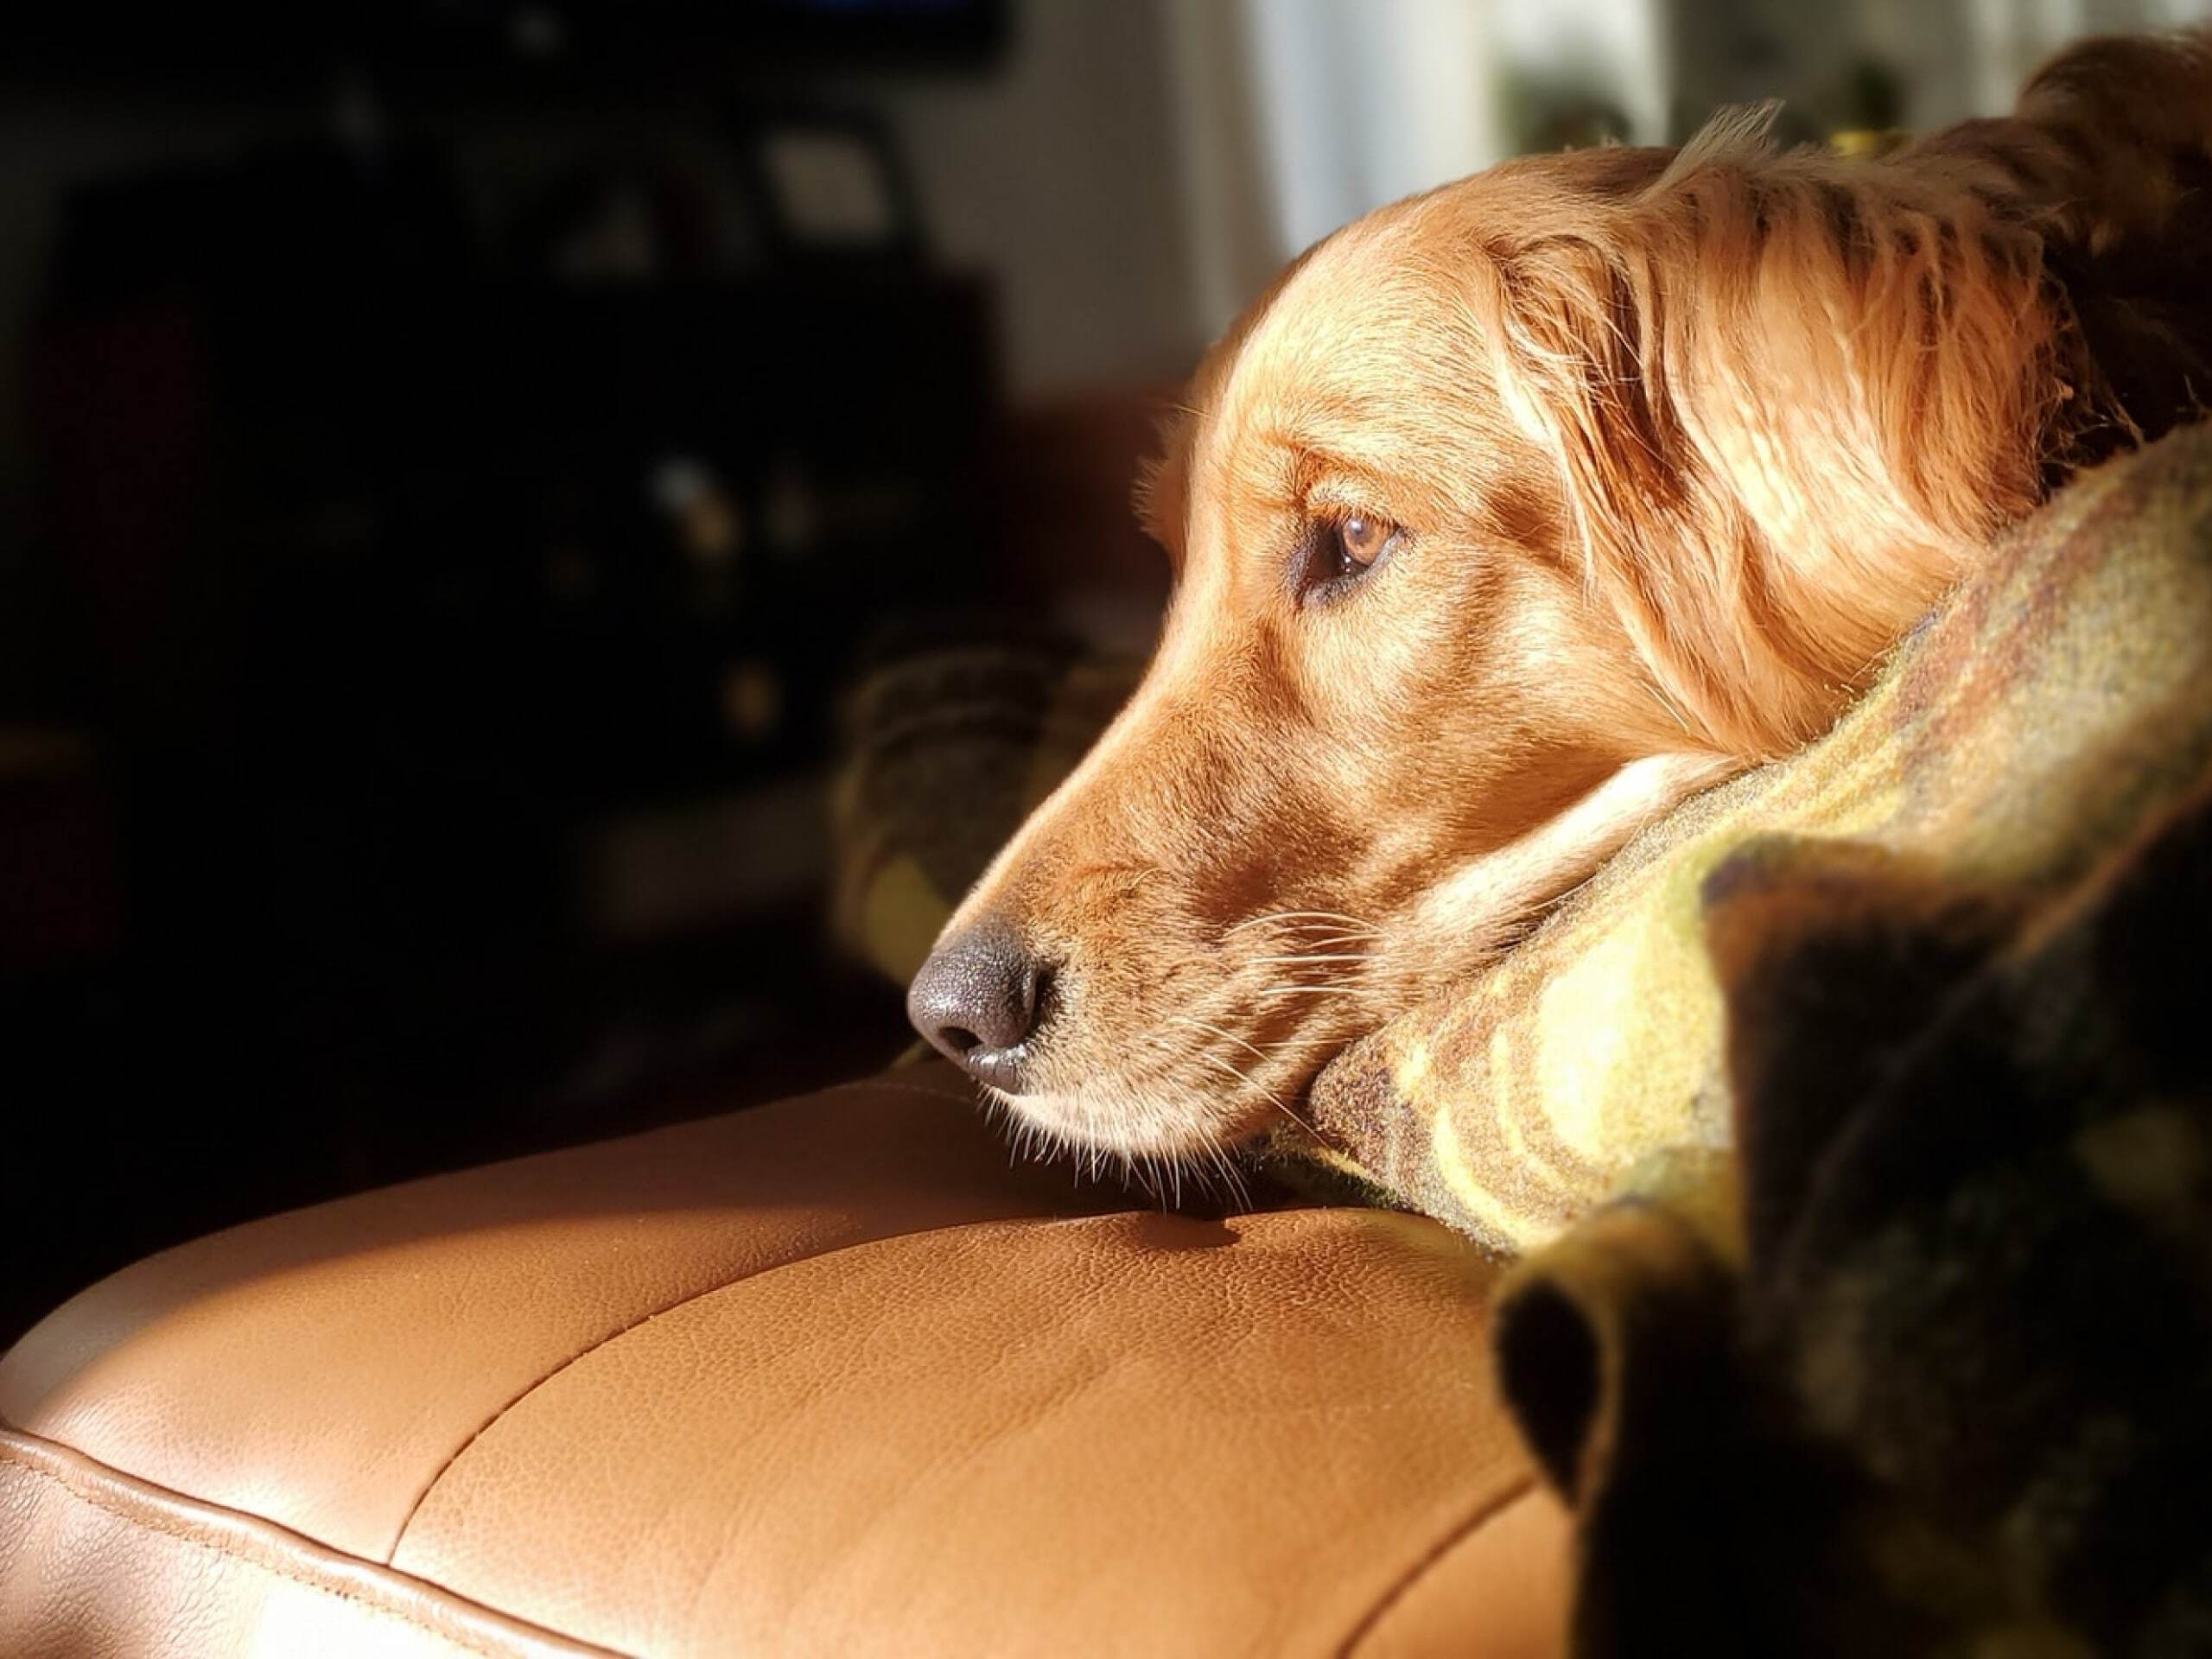 Golden retriever laying on the couch in front of a TV.